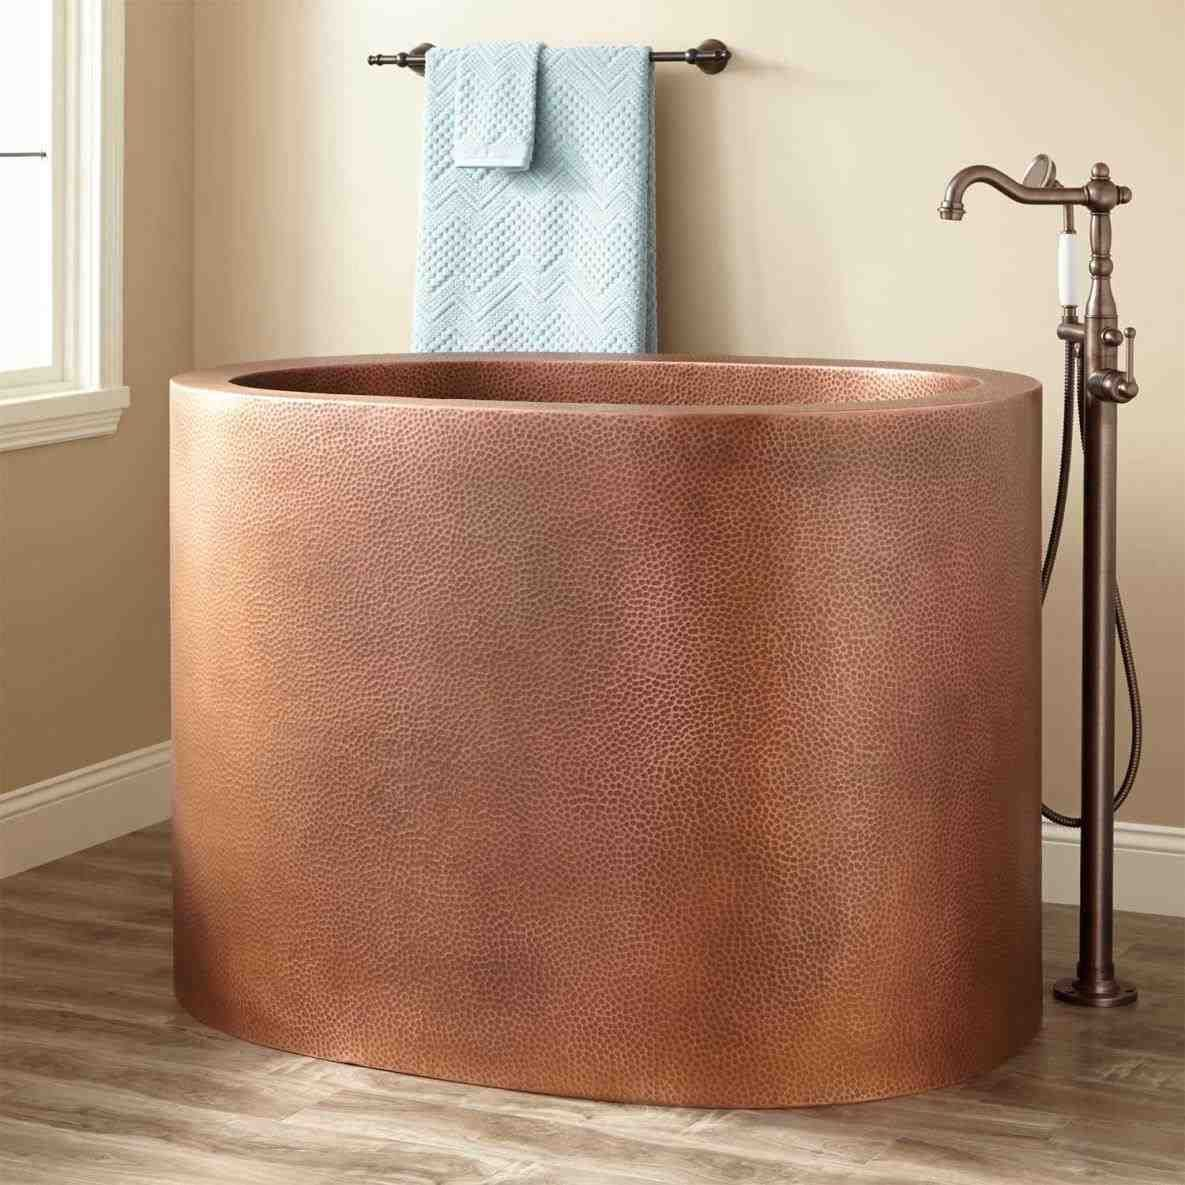 This hammered copper bathroom accessories - small but sassy. home ...